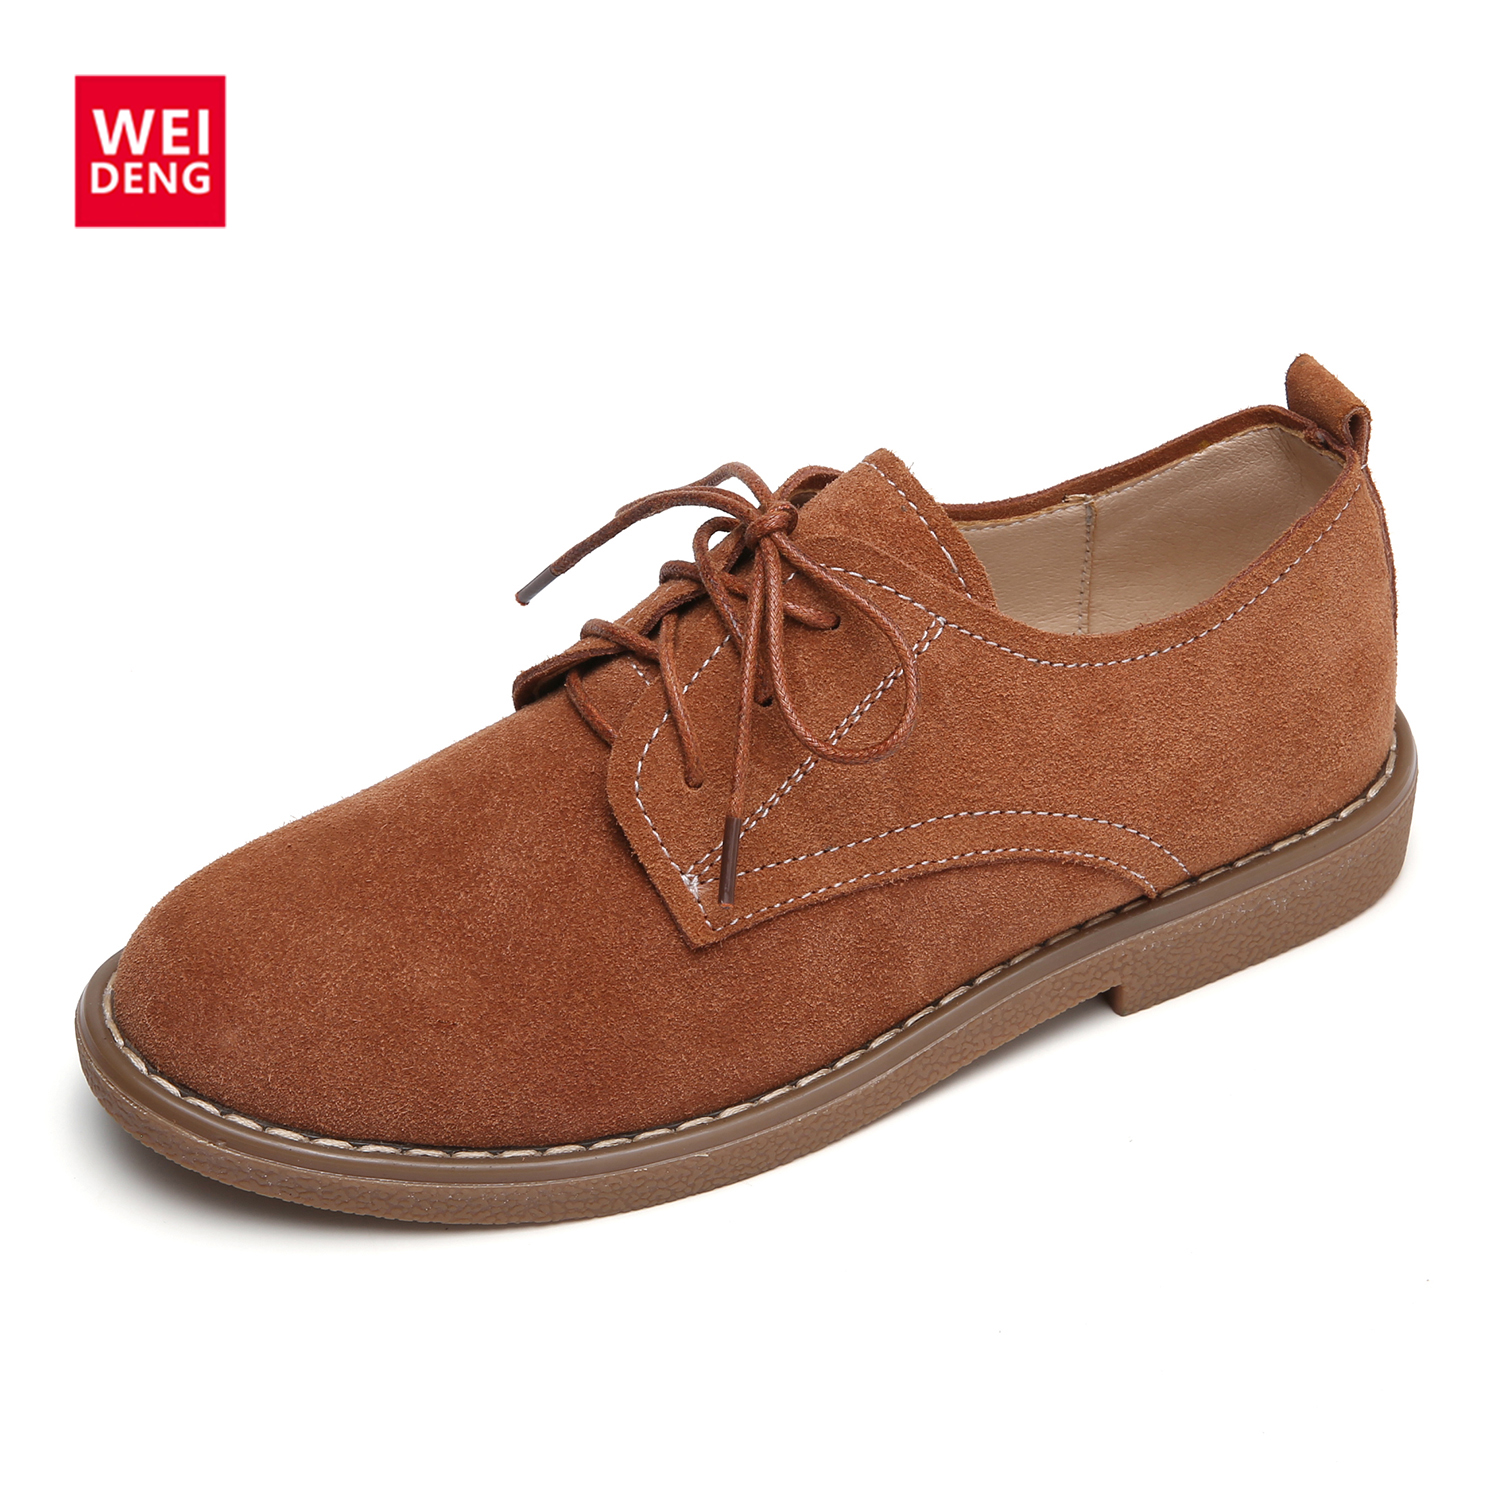 WeiDeng Genuine Leather Cow Suede Flats Oxford Loafers Winter Shoes Lace Up Women Casual Non Slip Fashion Zapato Winter fashion brand genuine leather shoes for women casual mother loafers soft and comfortable oxfords lace up non slip flat moccasins